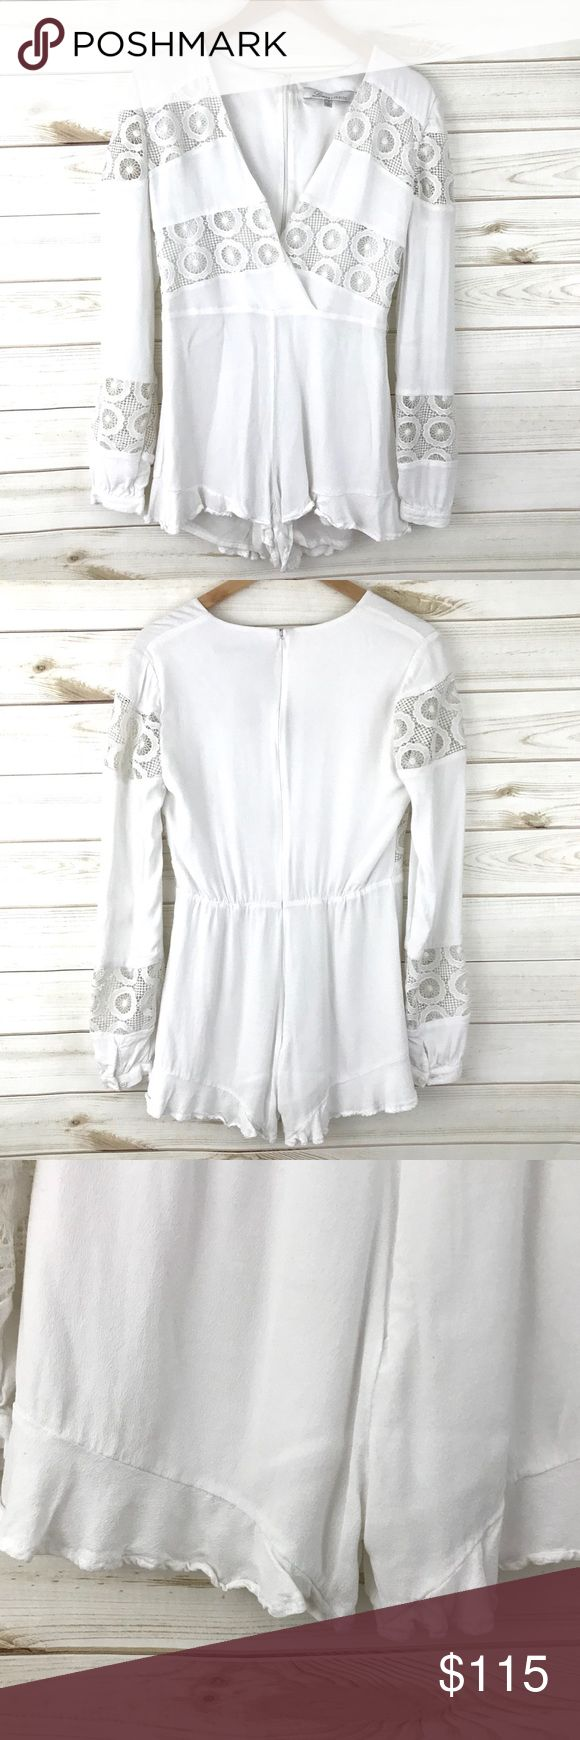 """Lovers + Friends Romper Lovers & Friends white long sleeve romper with lace details. Lined. Hidden back zip. The only flaw is the inside size tag is coming off, but this has never been worn. Bust flat 17"""", inseam 2.5""""  No trades, please - offers and bundles welcome :) Lovers + Friends Pants Jumpsuits & Rompers"""